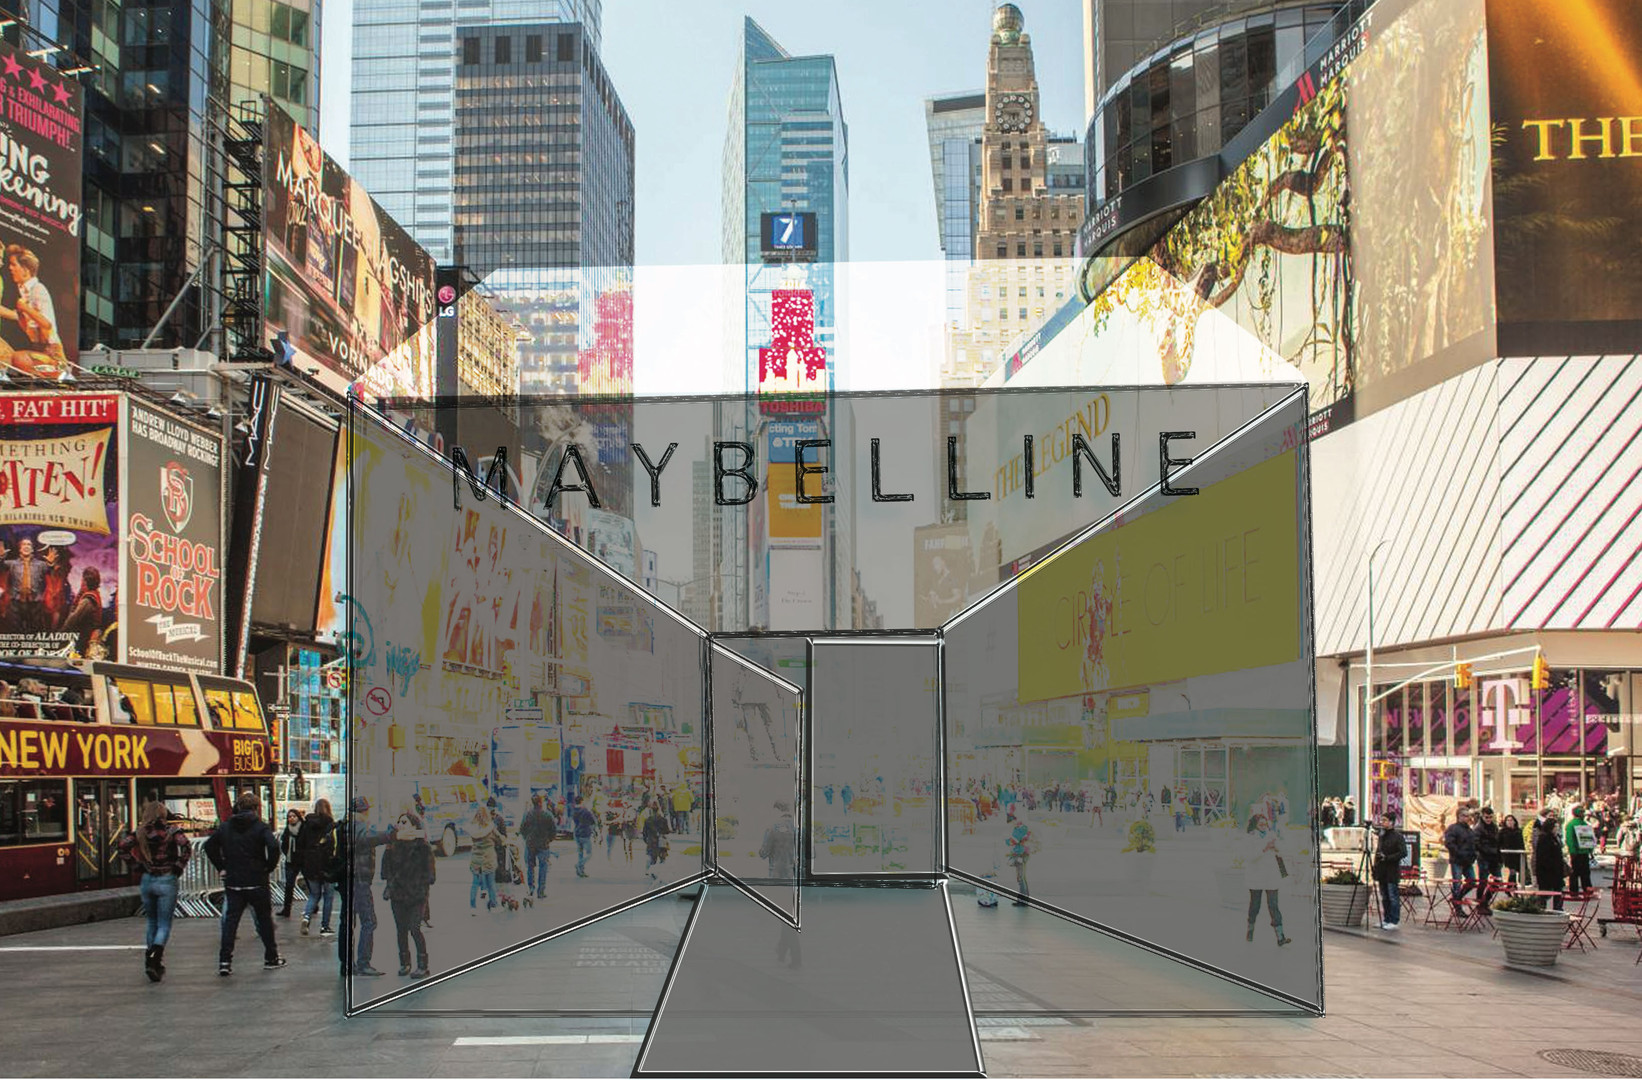 The venue in which our pop-up shop will take place in as part of Maybelline's new branding campaign.